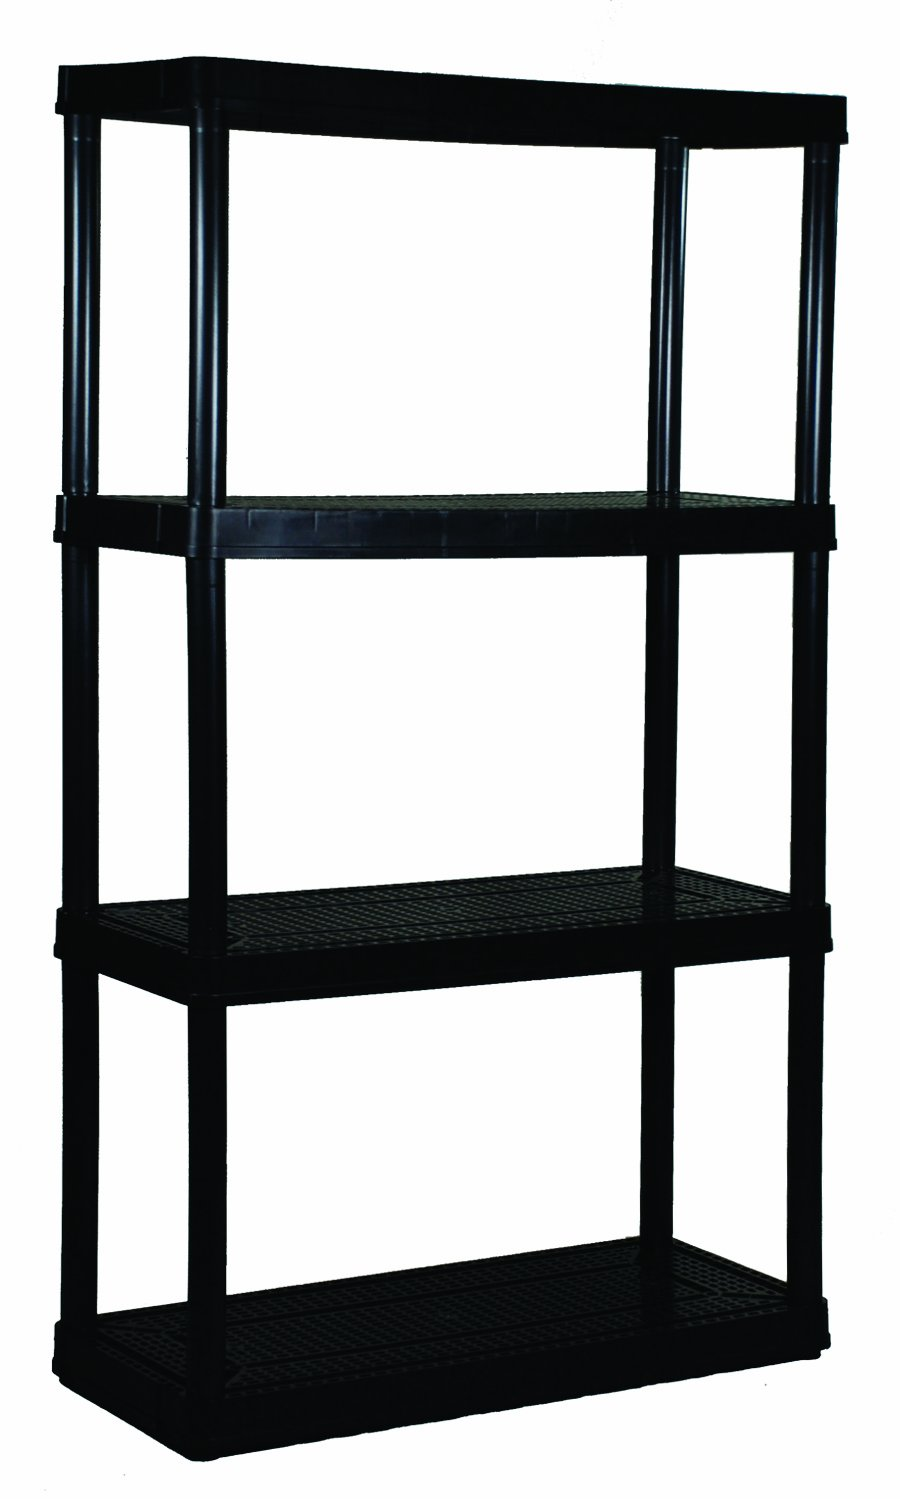 Gracious Living 4 Medium Duty Shelf Unit, Black by Gracious Living